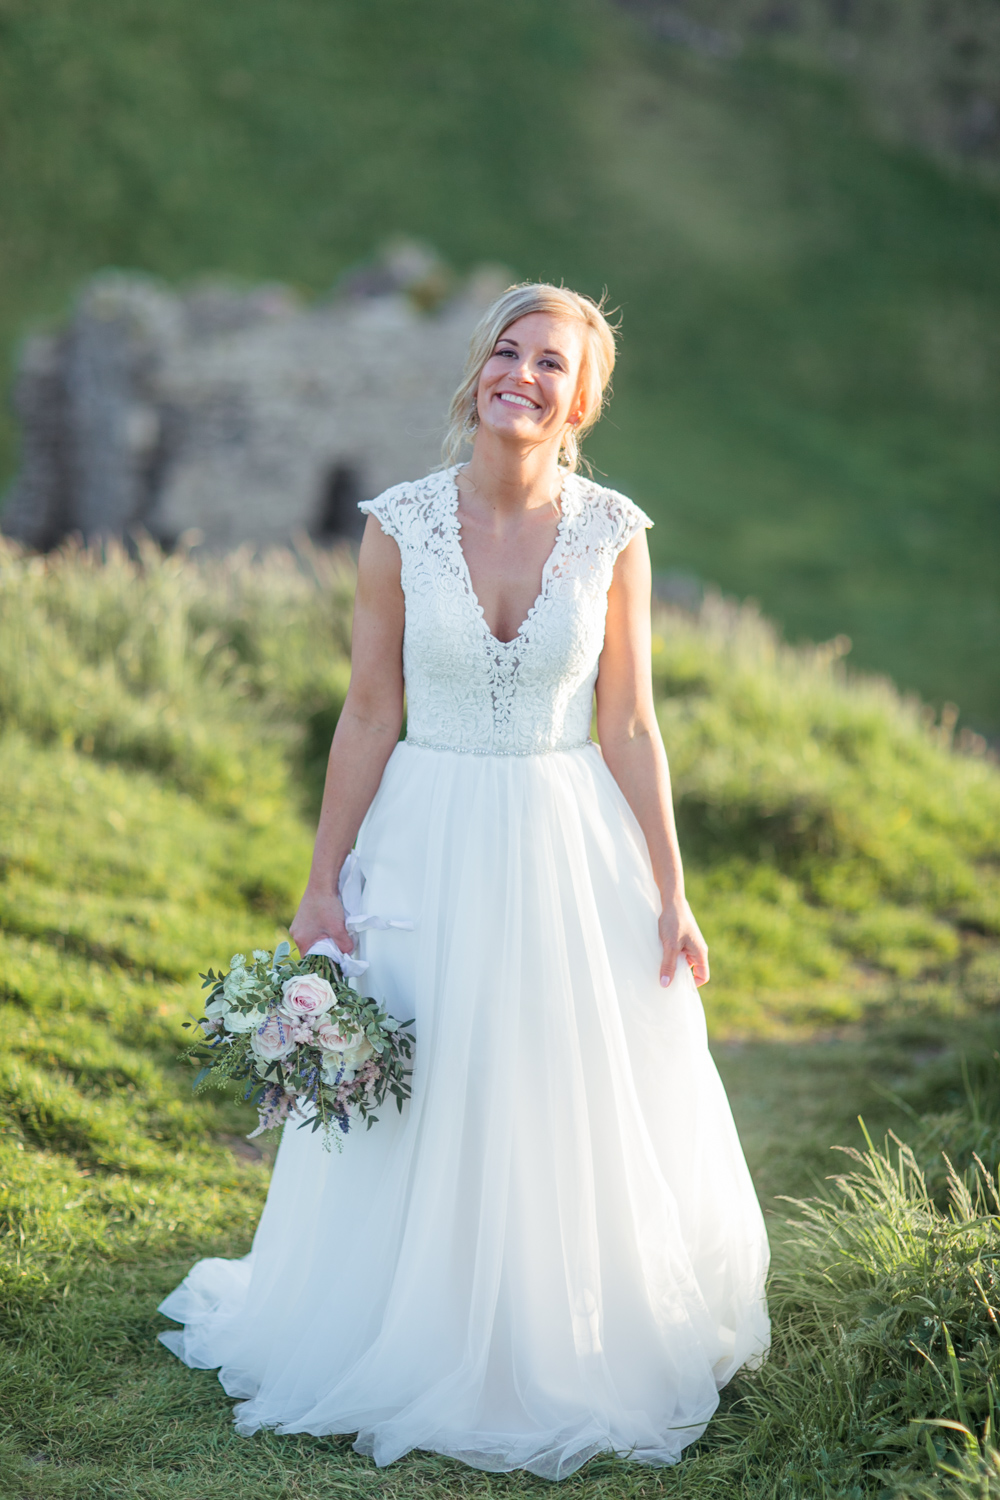 bride is smiling holding the tulle skirt of her wedding dress in one hand and loose flower bouquet in another hand